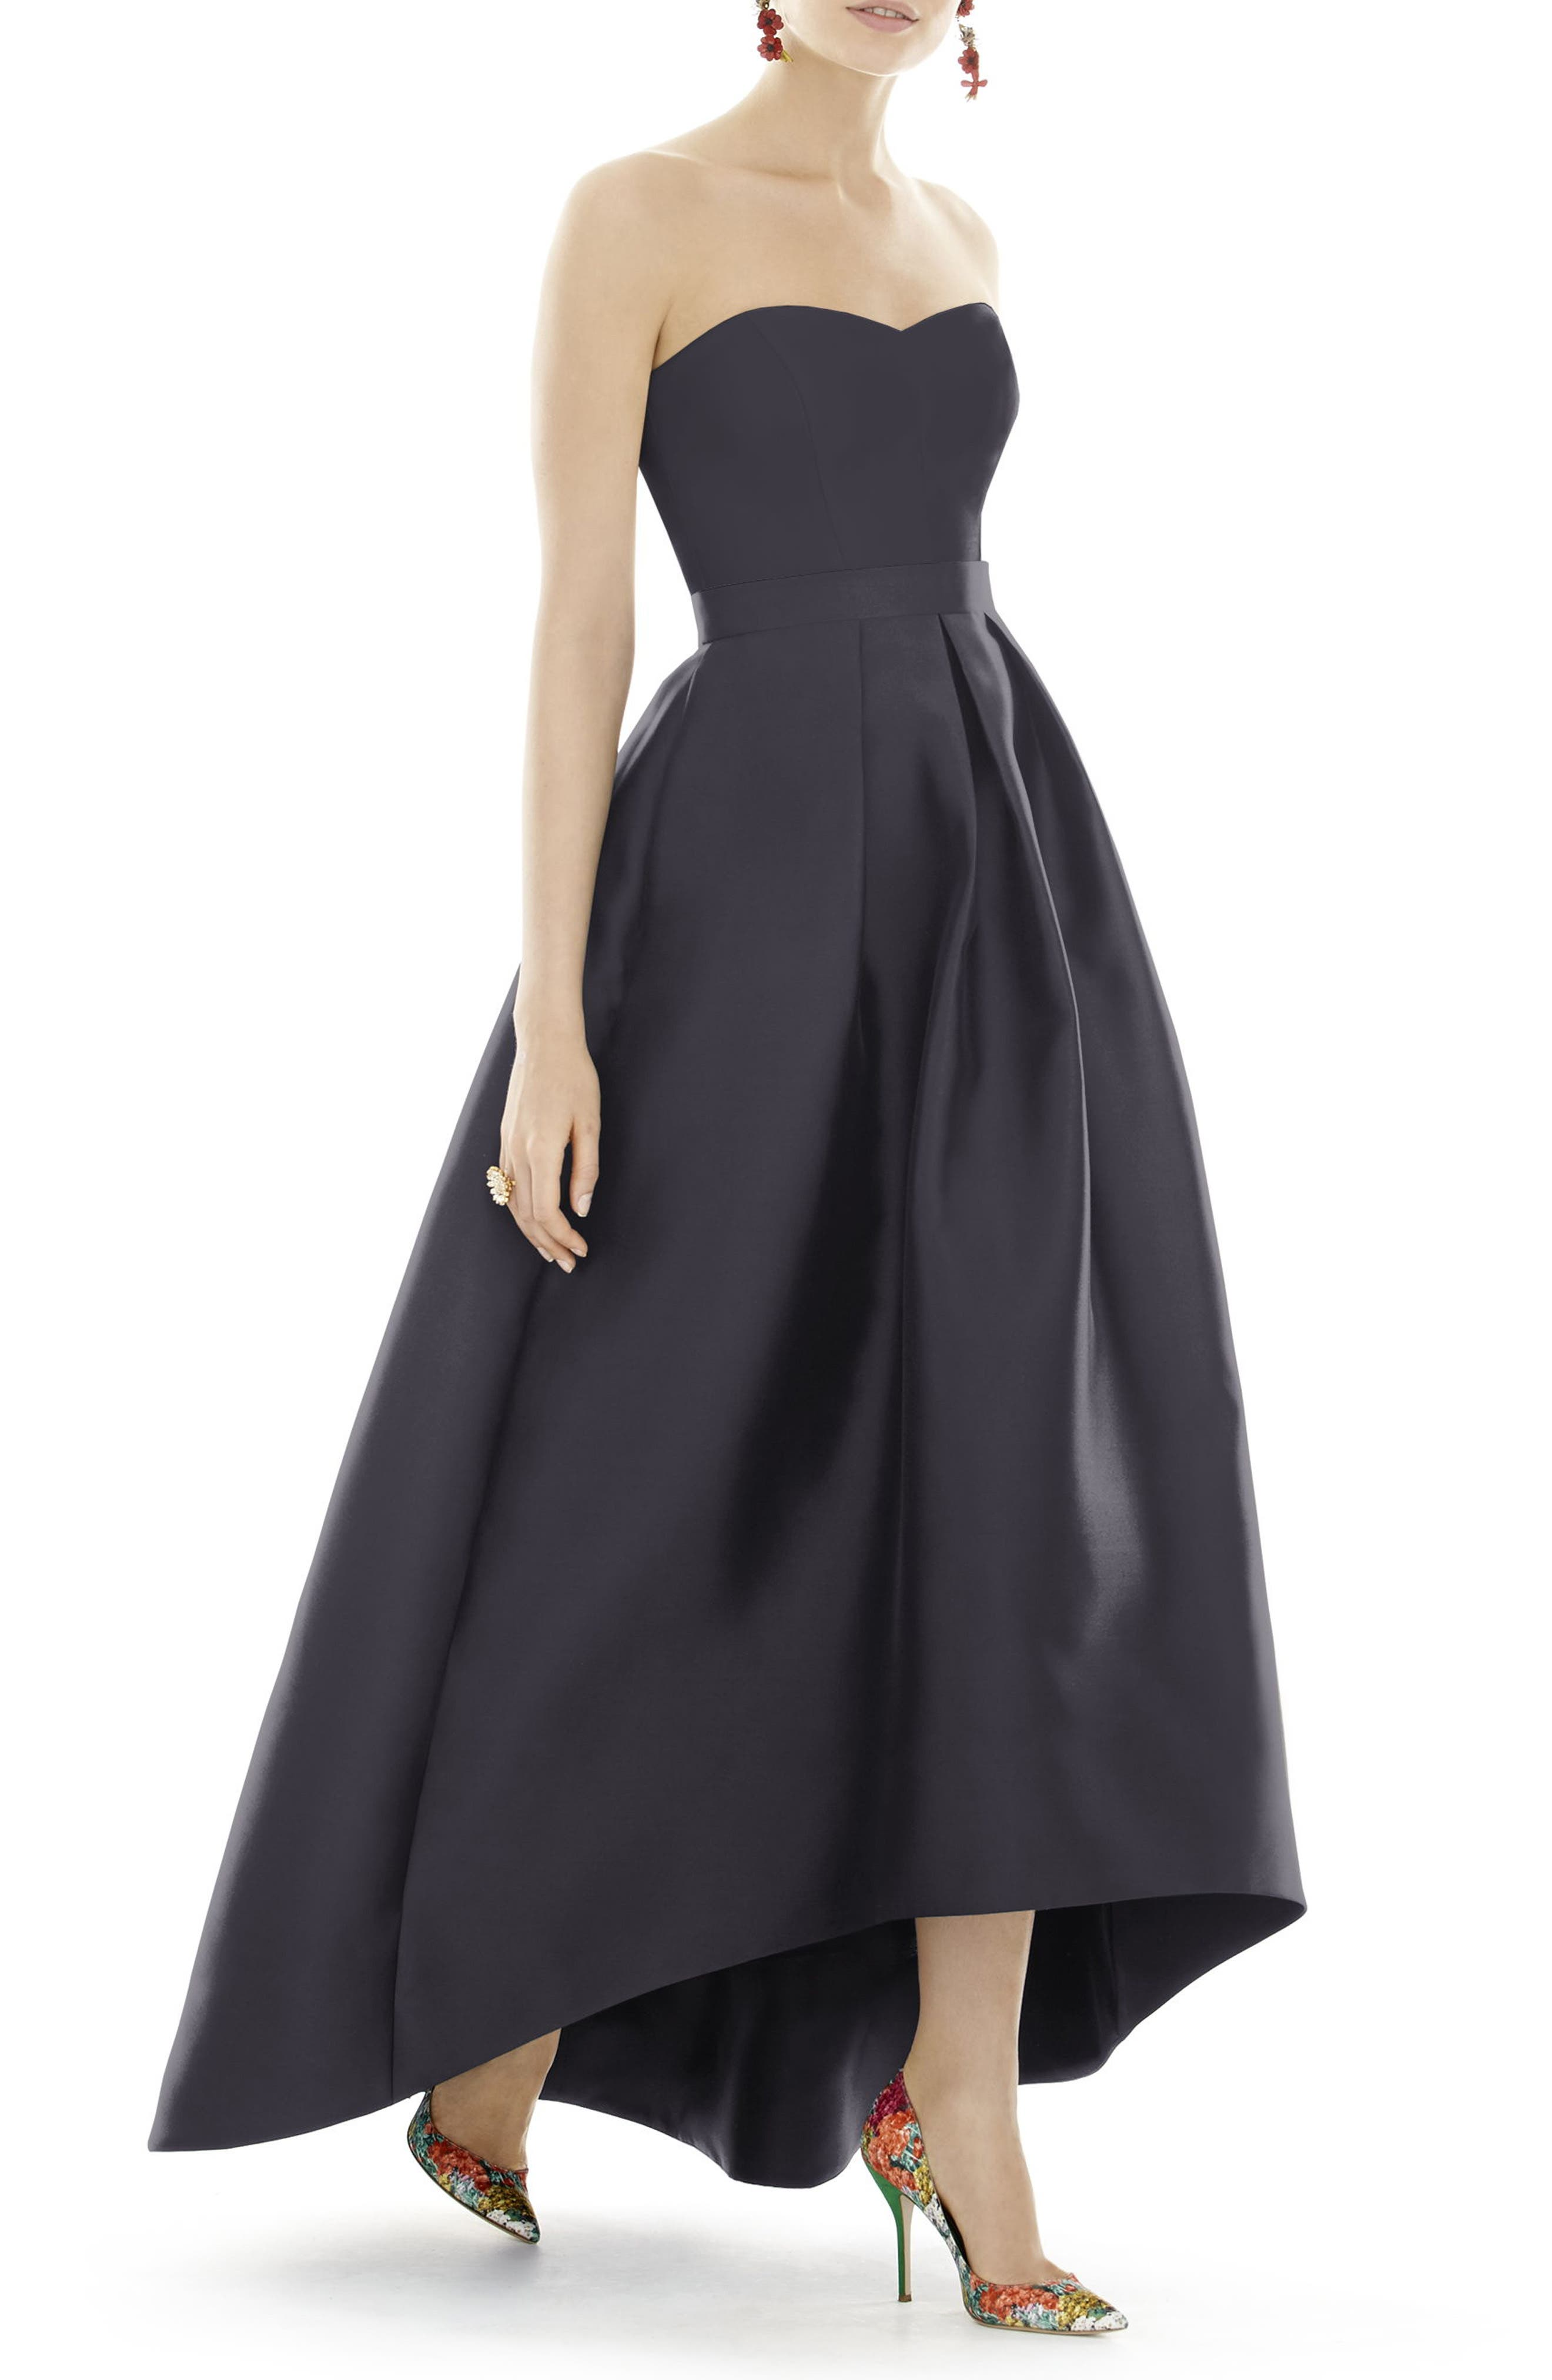 ALFRED SUNG, Strapless High/Low Satin Twill Ballgown, Main thumbnail 1, color, ONYX